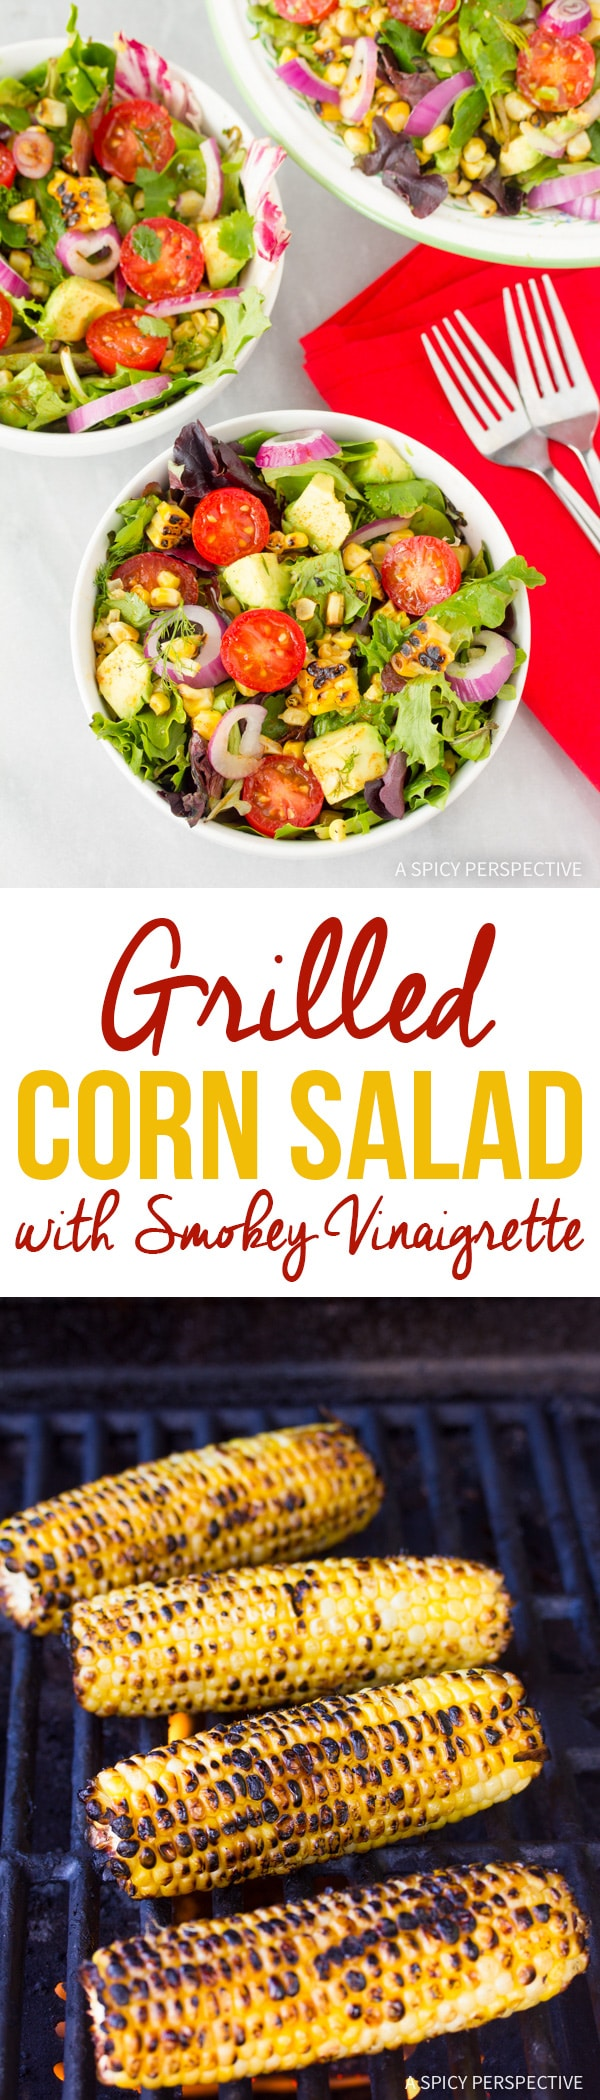 Zesty Grilled Corn Salad with Smokey Vinaigrette Recipe